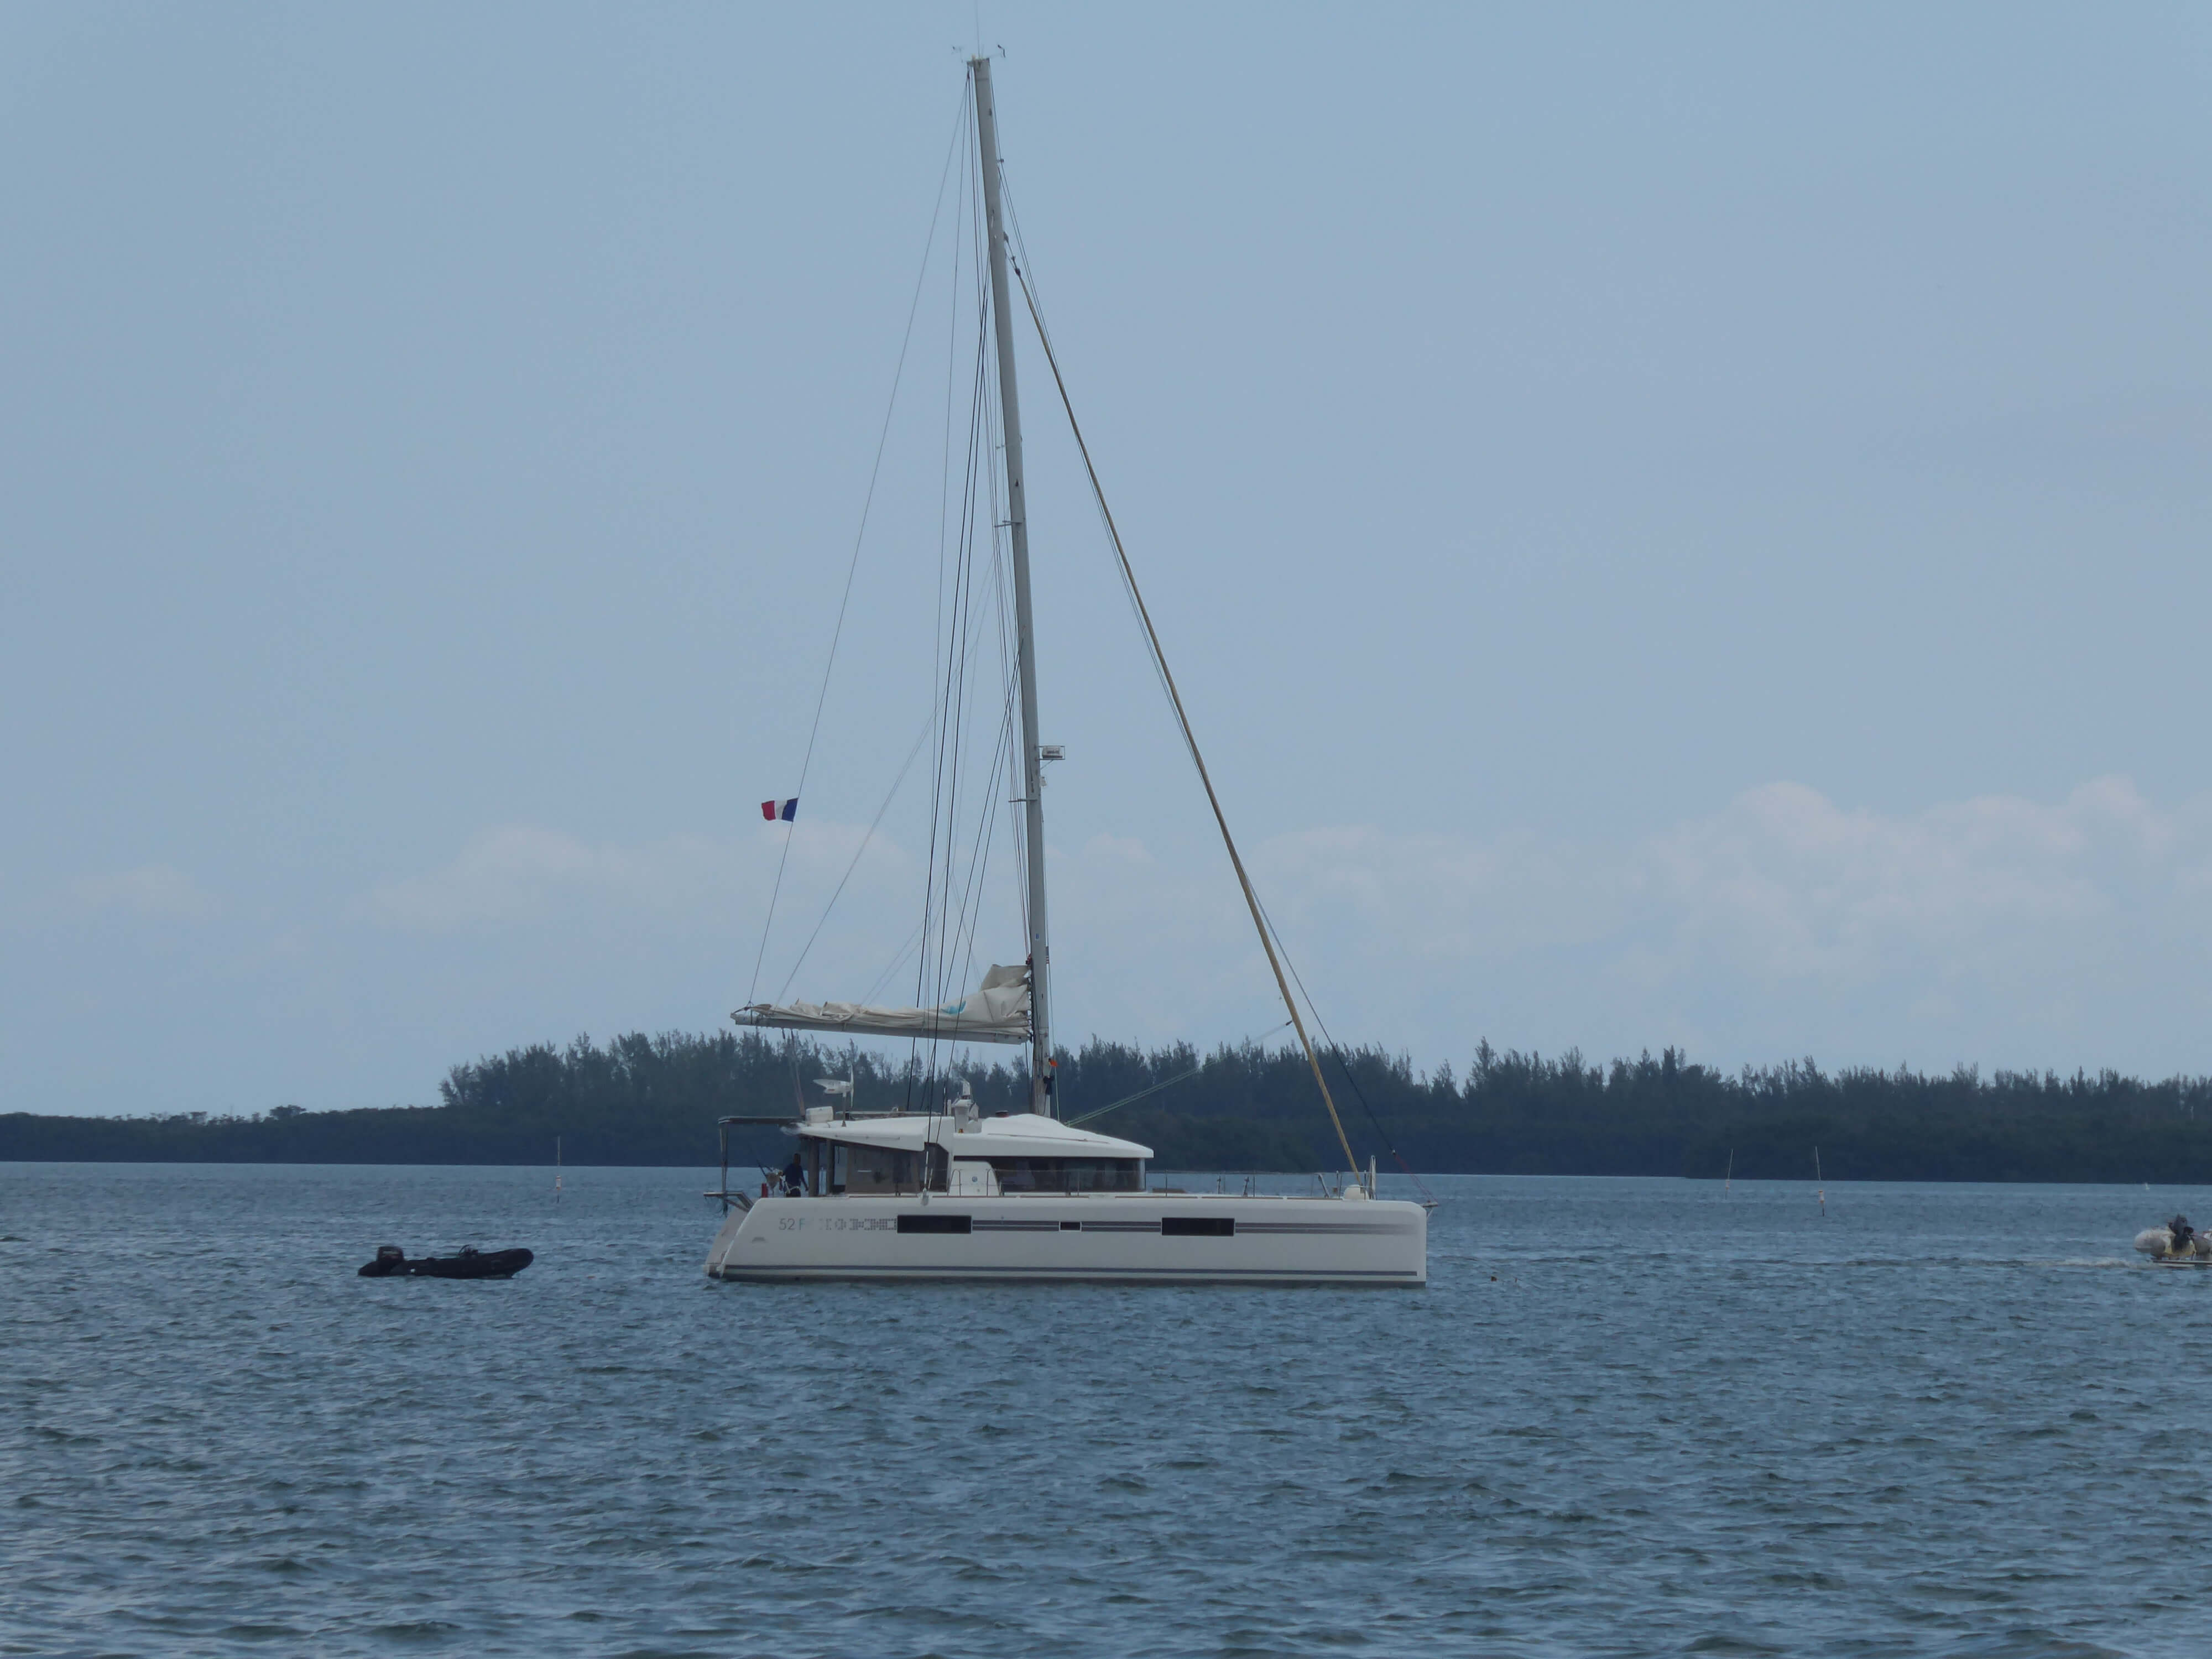 Used Sail Catamaran for Sale 2016 Lagoon 52 Boat Highlights